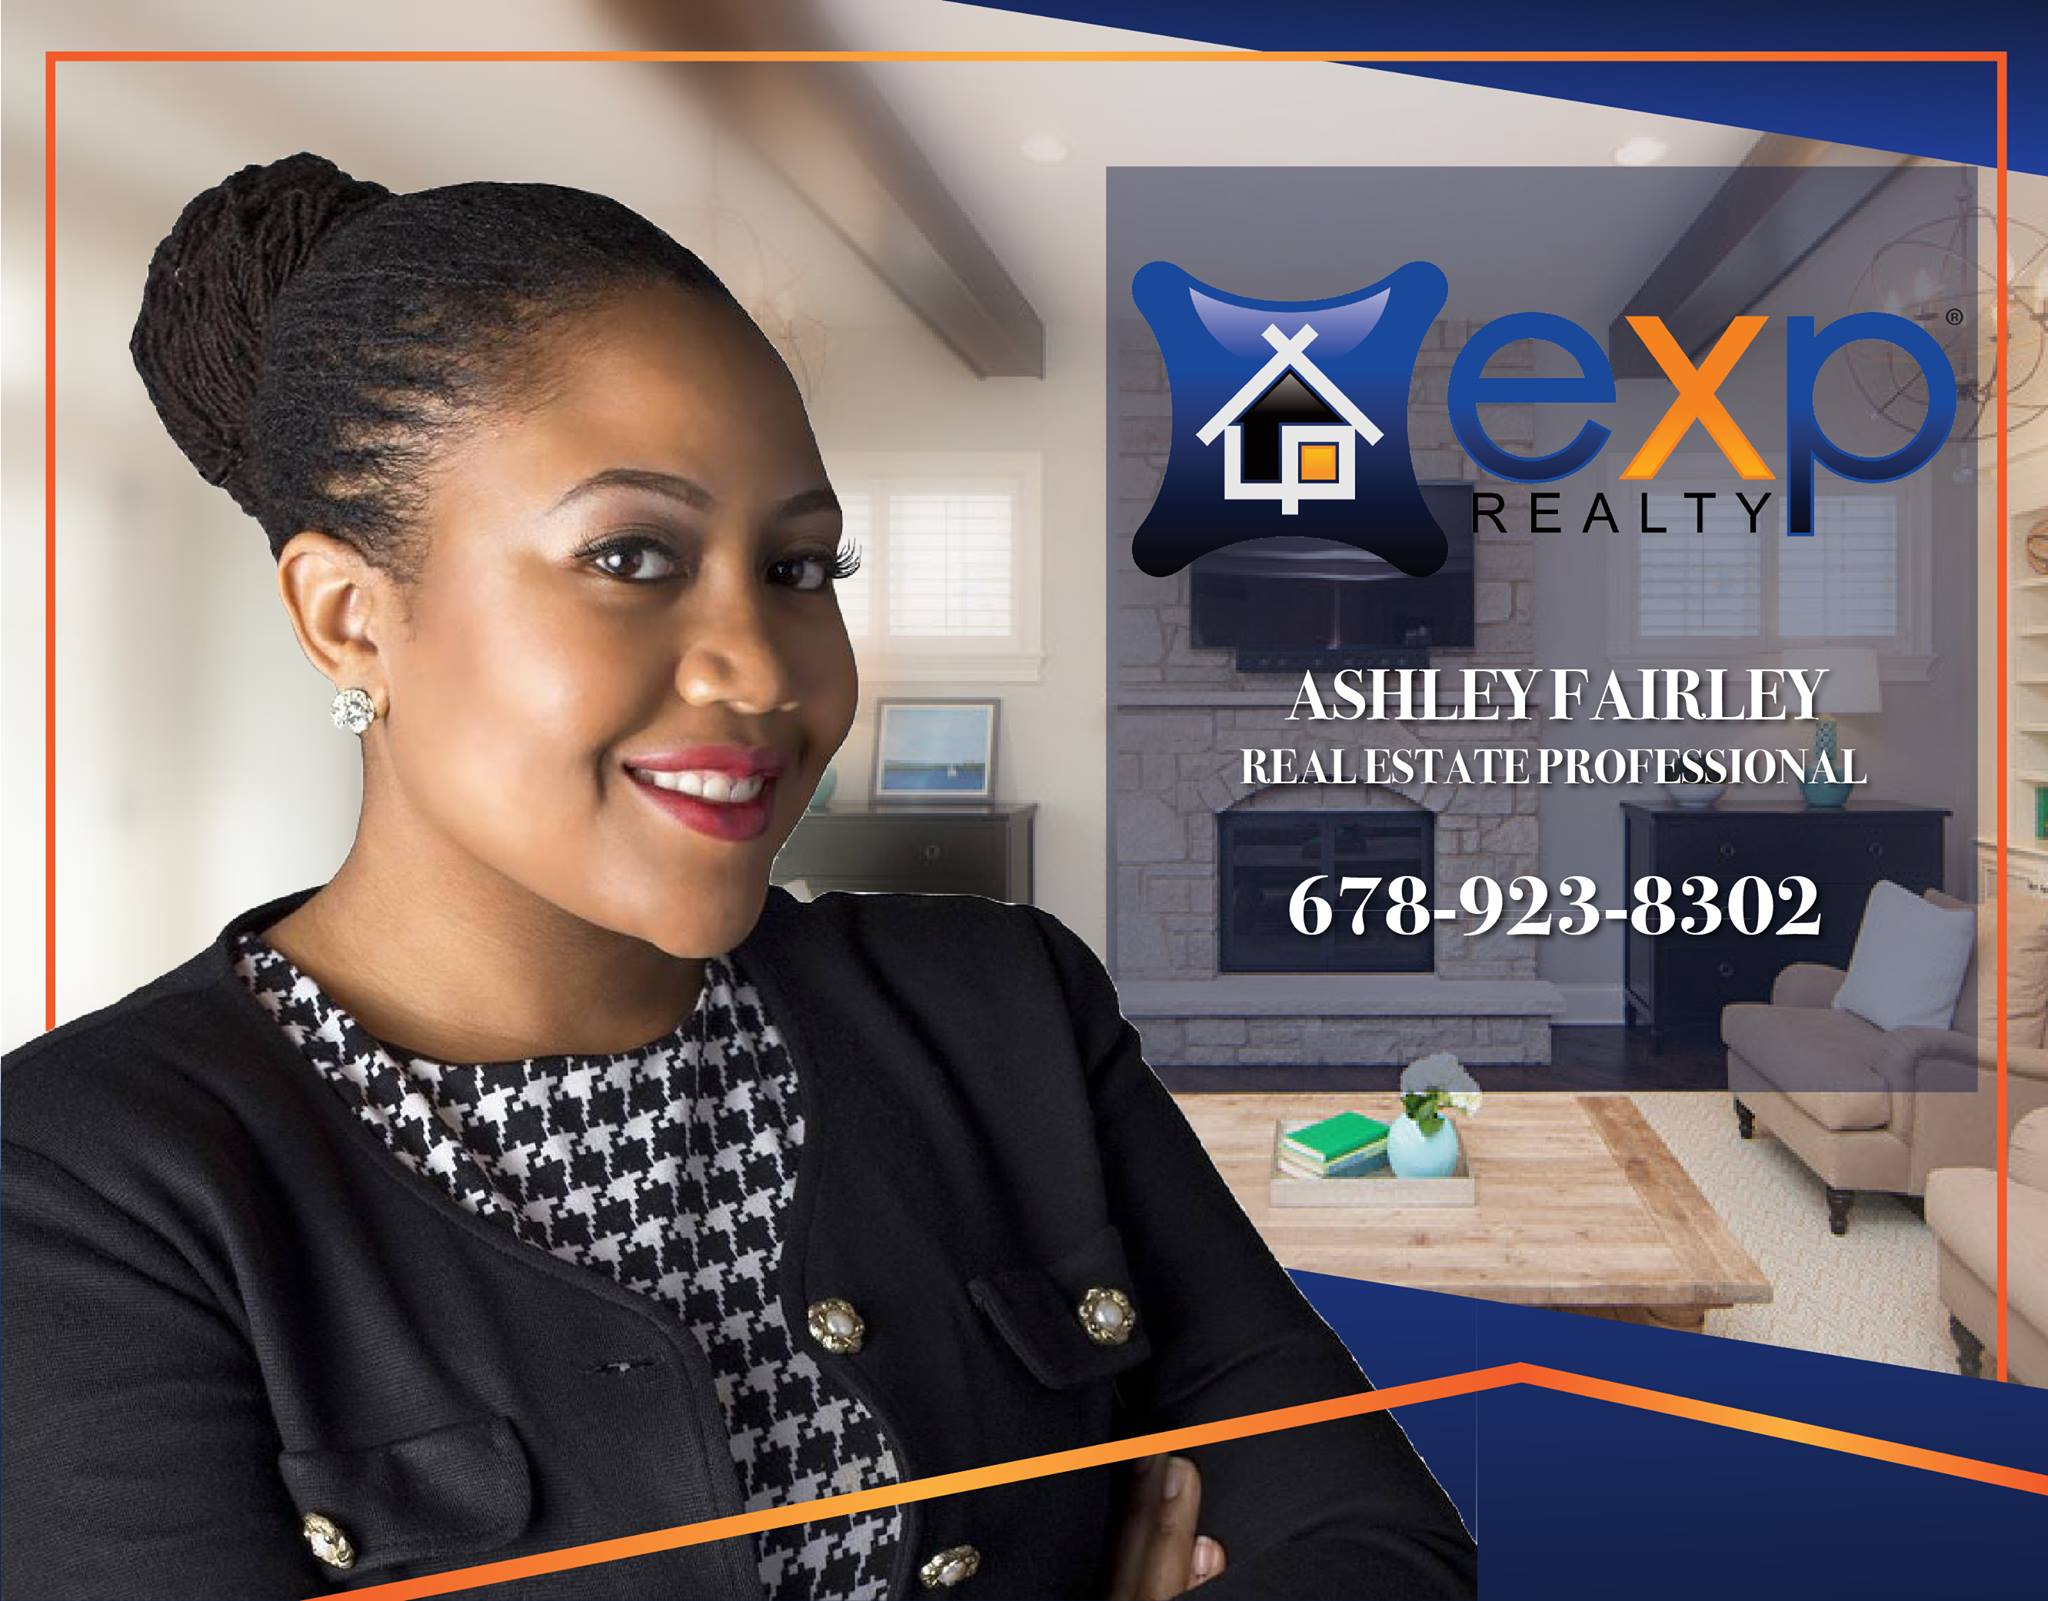 Ashley Fairley, Real Estate Professional